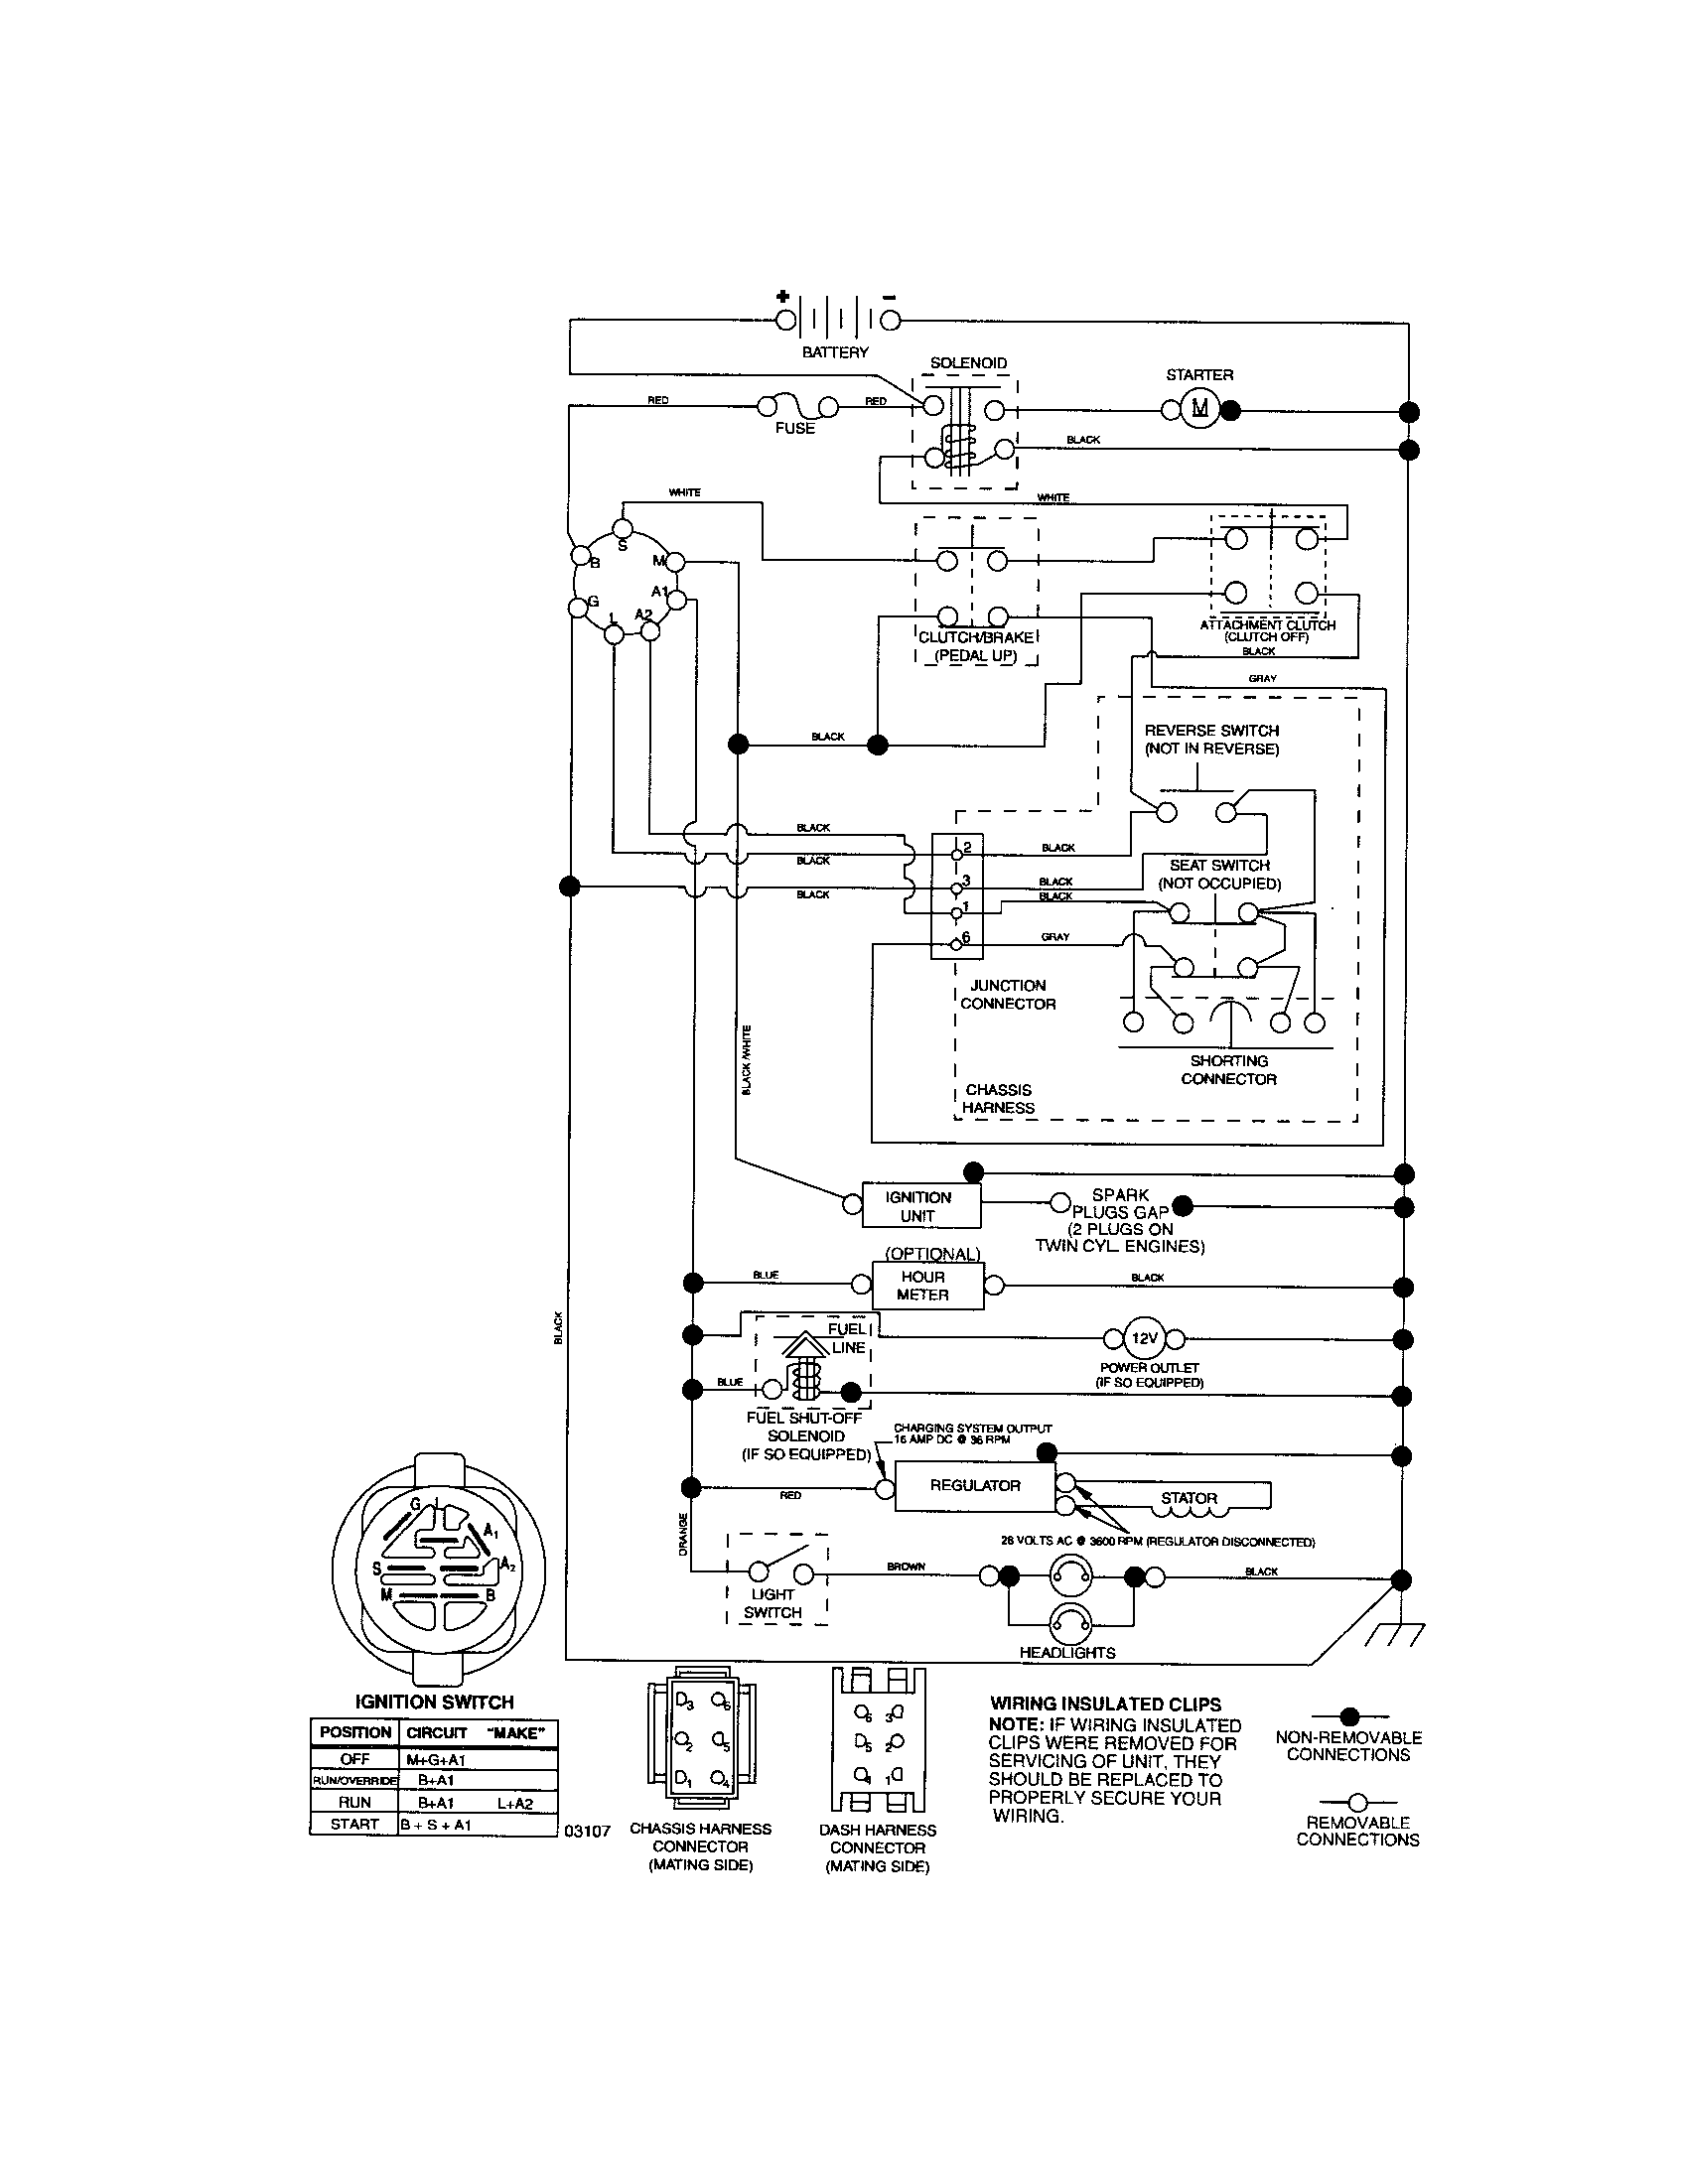 power king 1614 tractor wiring diagram wiring librarycraftsman riding mower electrical diagram wiring diagram craftsman marshall [ 1696 x 2200 Pixel ]